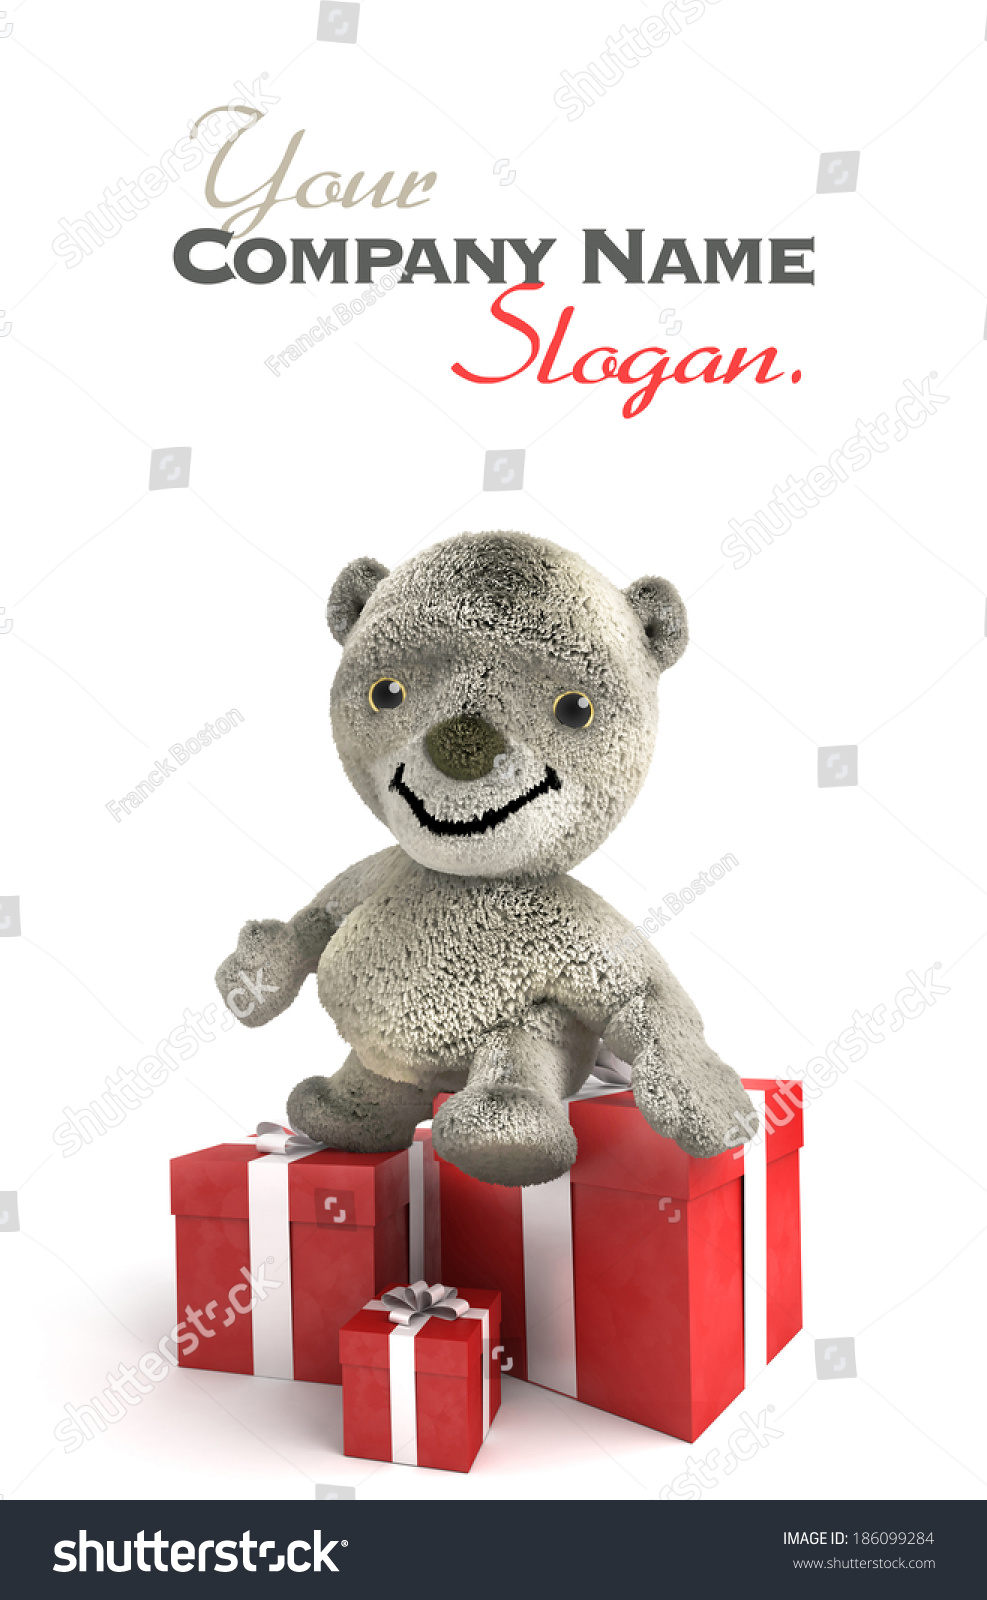 Animated Teddy Bear Standing By Red Stock Illustration 186099284